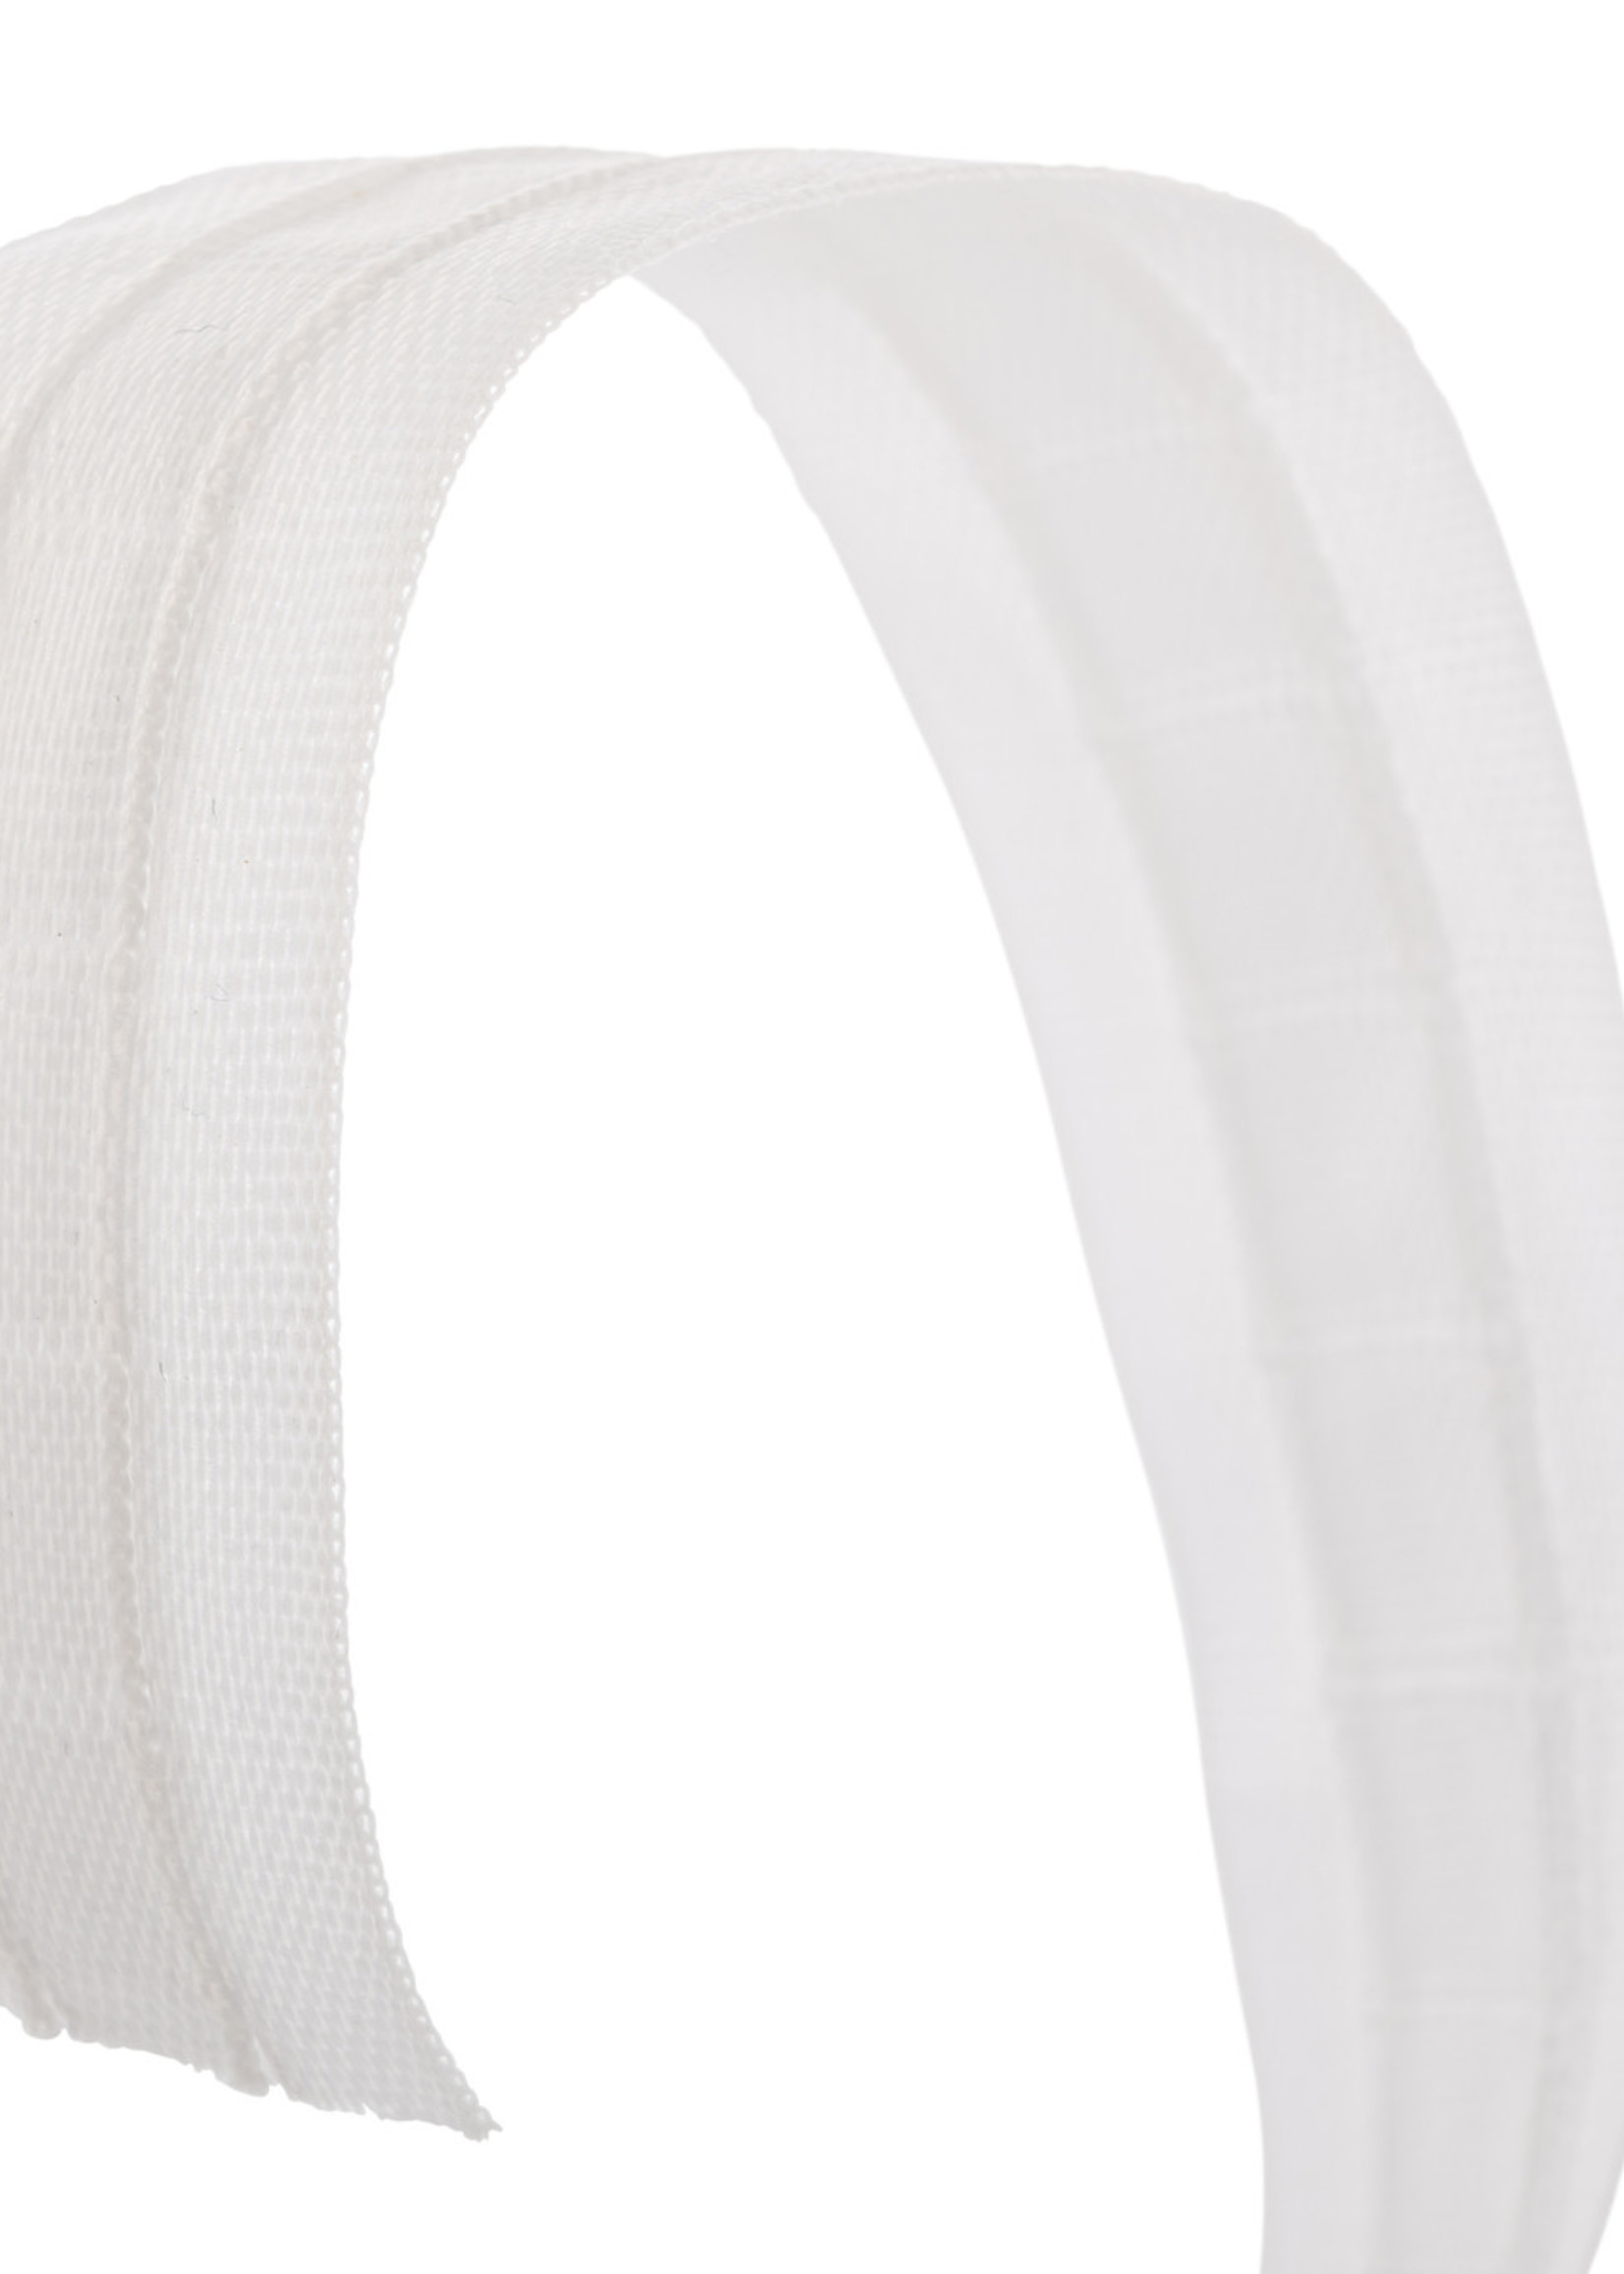 Rimpelband 25 mm breed terlenca wit